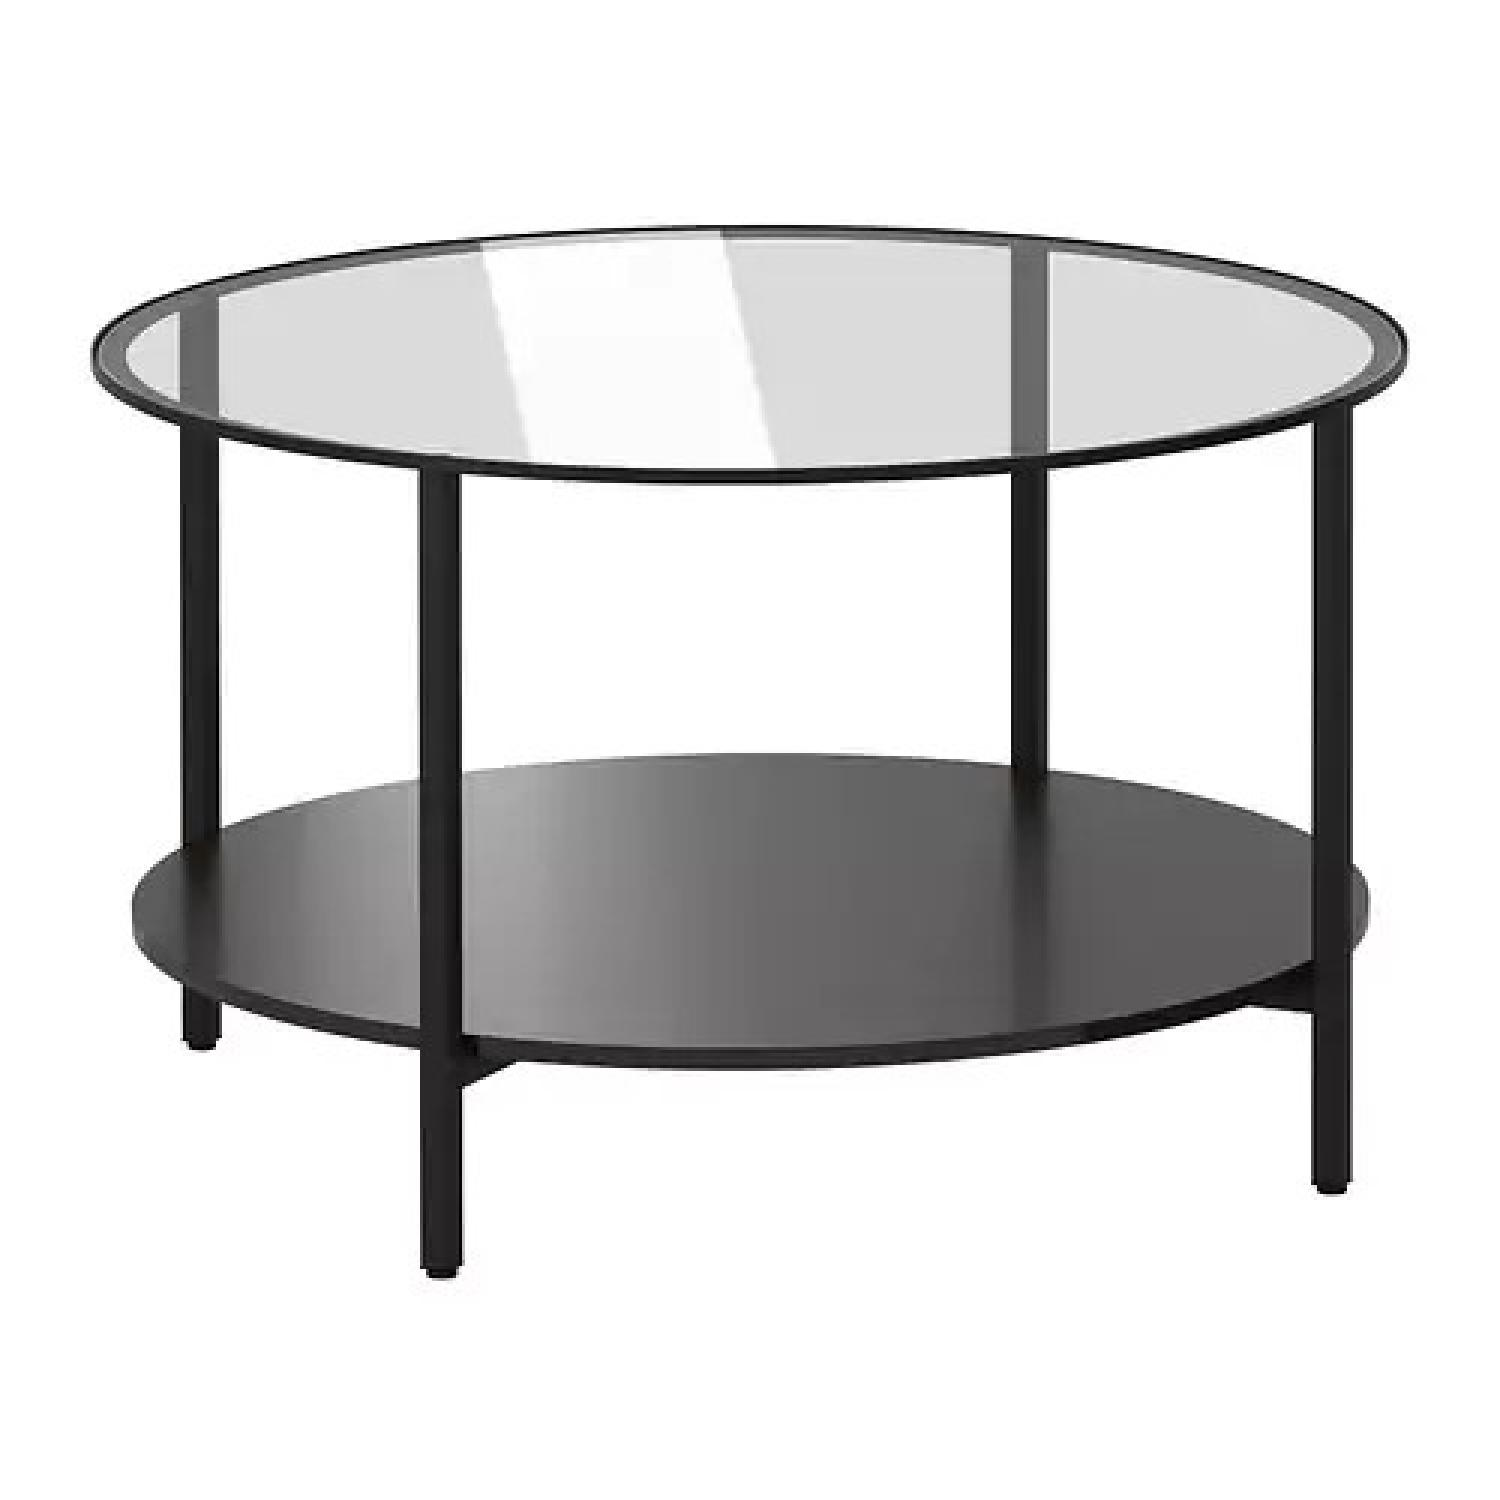 Ikea Vittsjo Glass Steel Coffee Table AptDeco